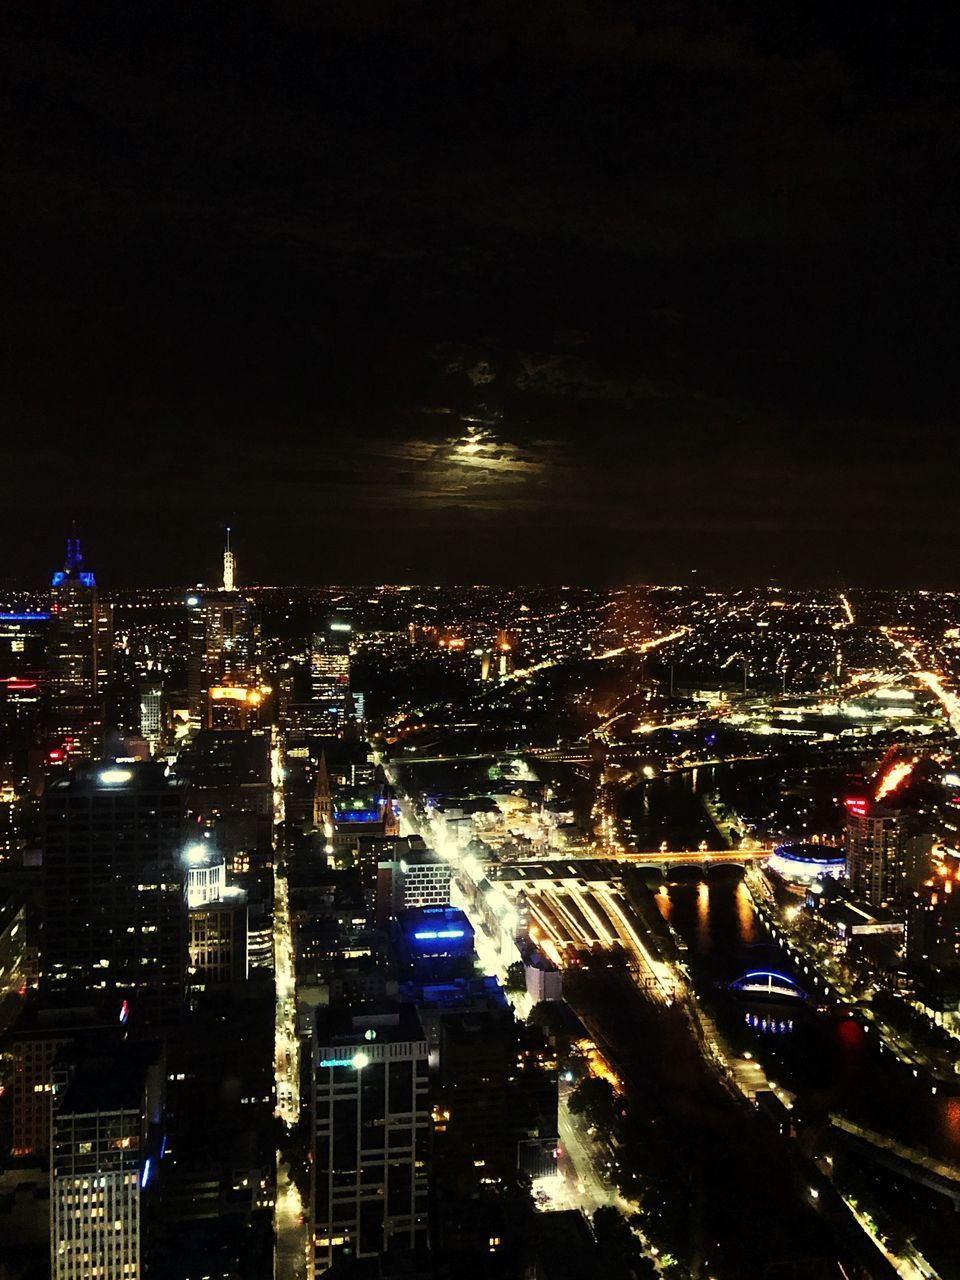 city, building exterior, illuminated, night, architecture, cityscape, built structure, sky, building, crowded, high angle view, modern, residential district, city life, glowing, nature, office building exterior, skyscraper, outdoors, financial district, nightlife